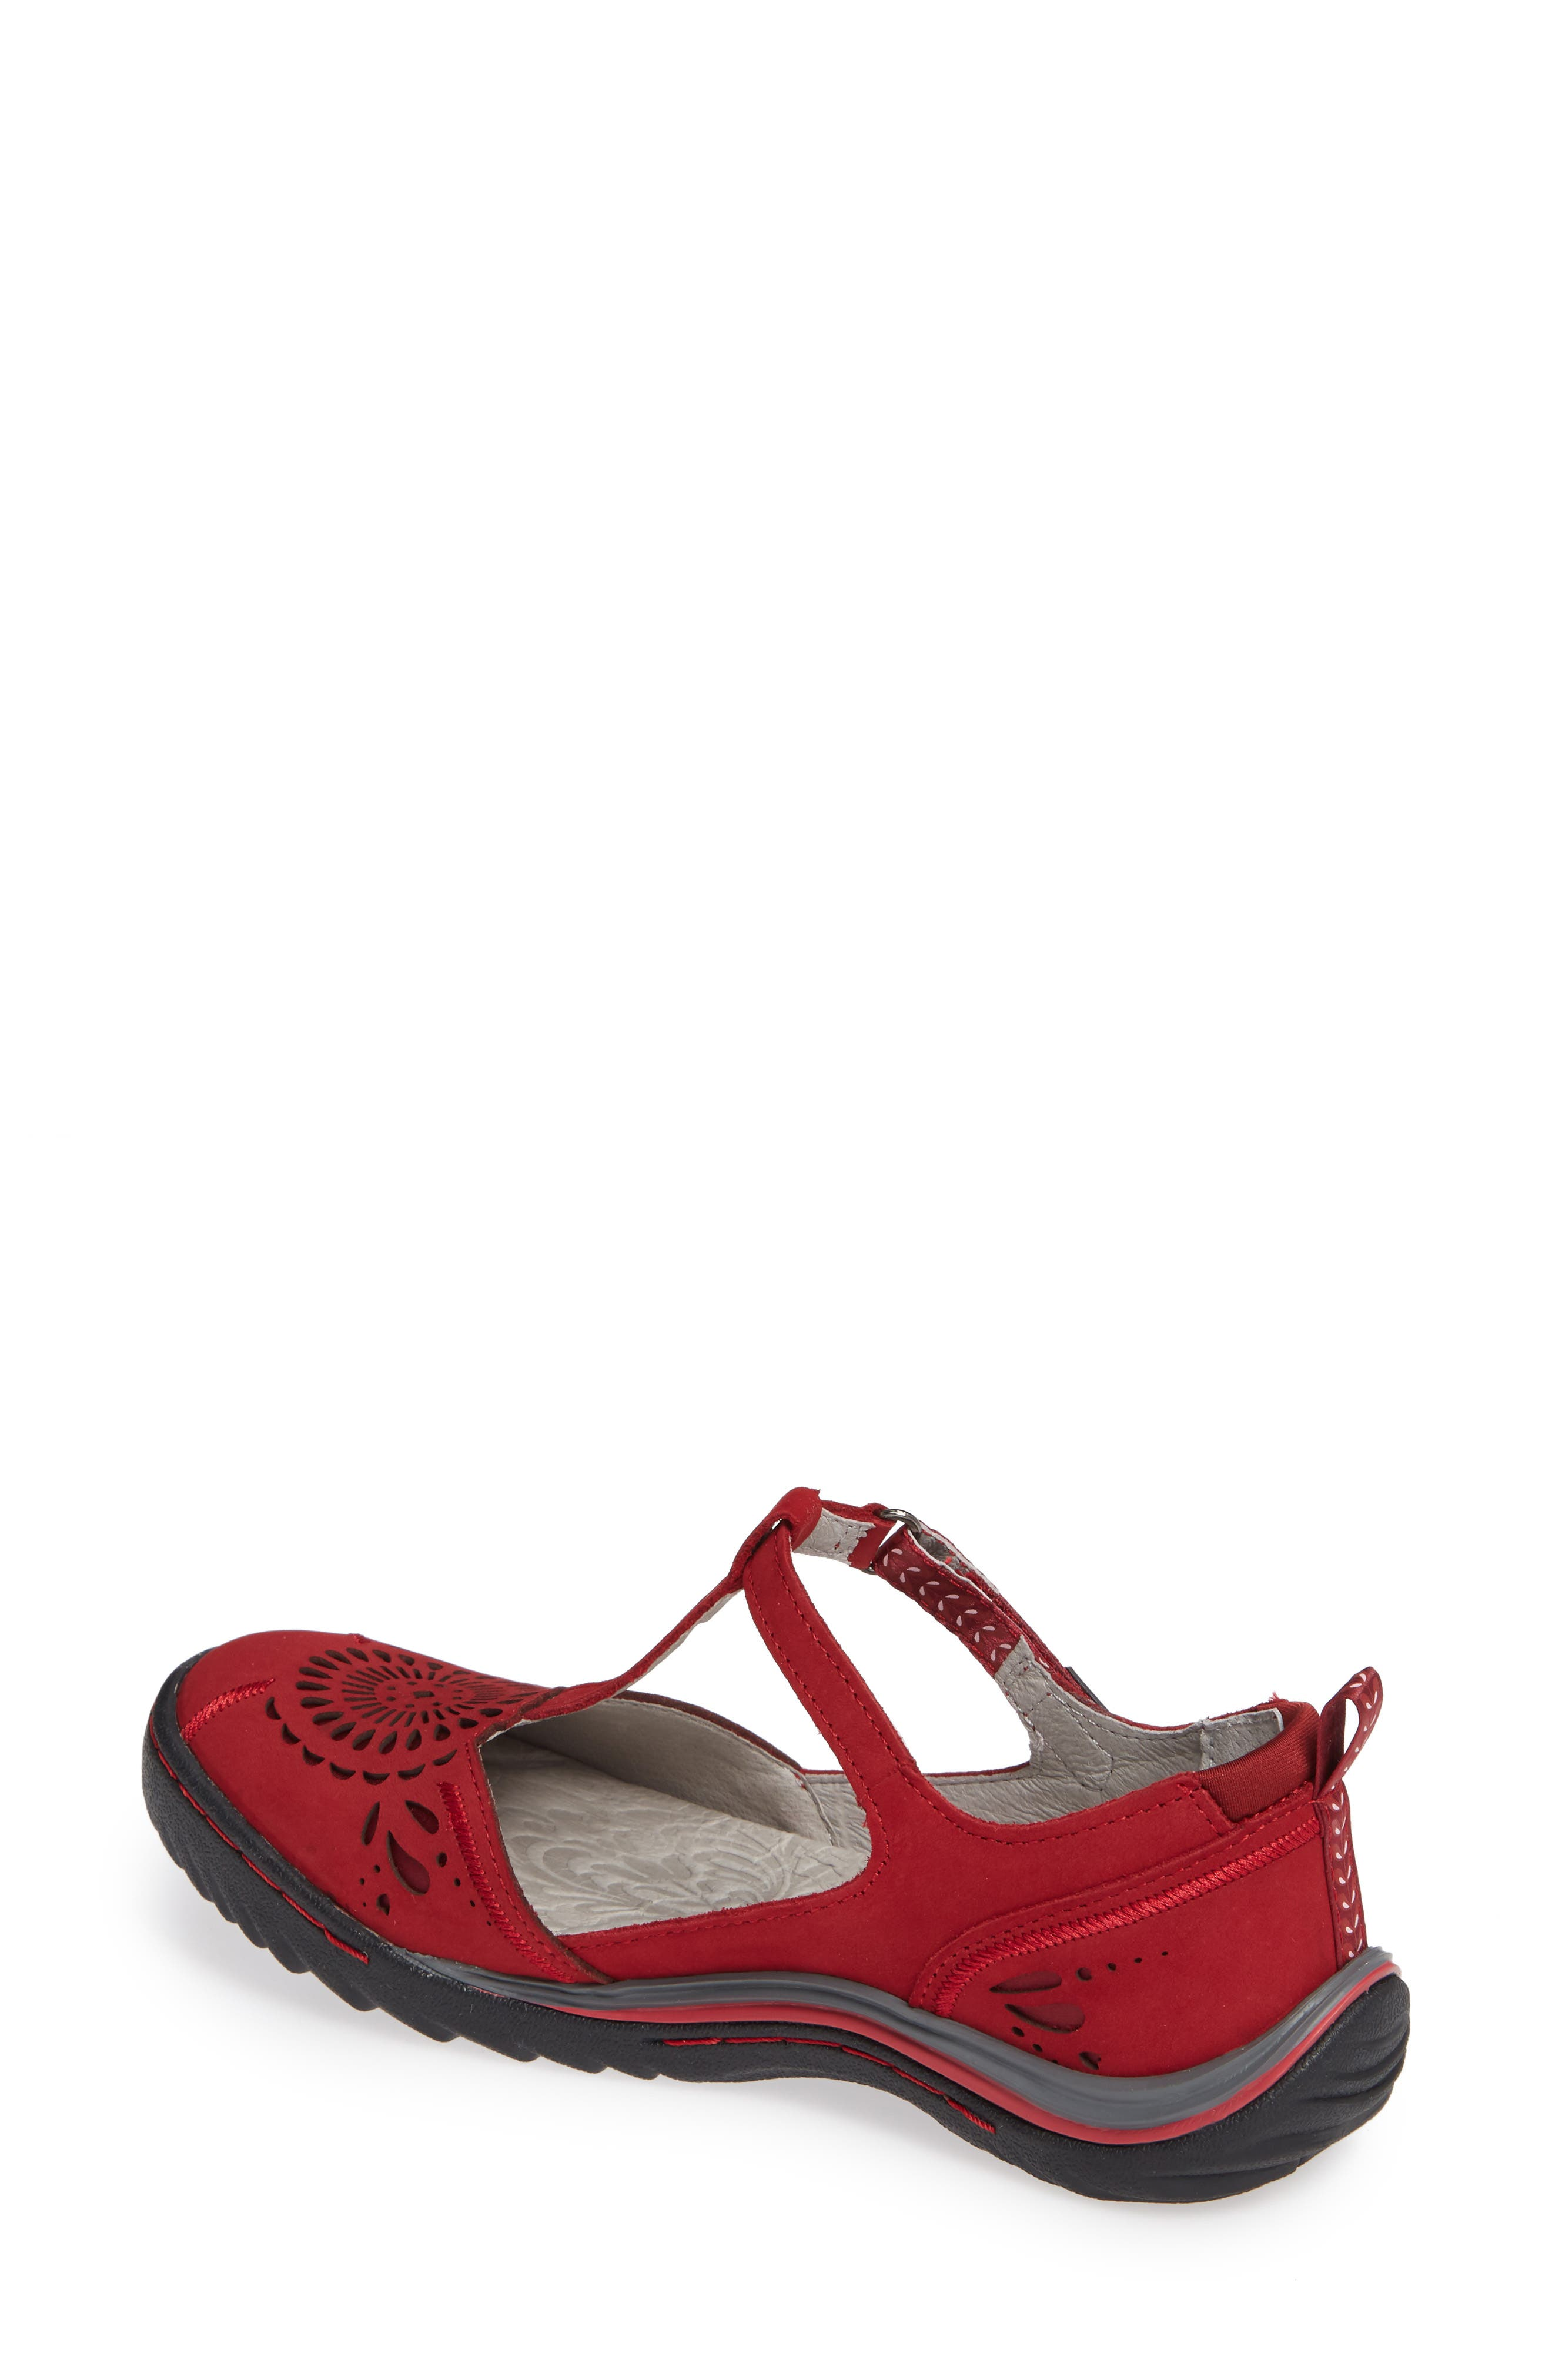 Sunkist Strappy Sneaker,                             Alternate thumbnail 2, color,                             RED/ PETAL NUBUCK LEATHER